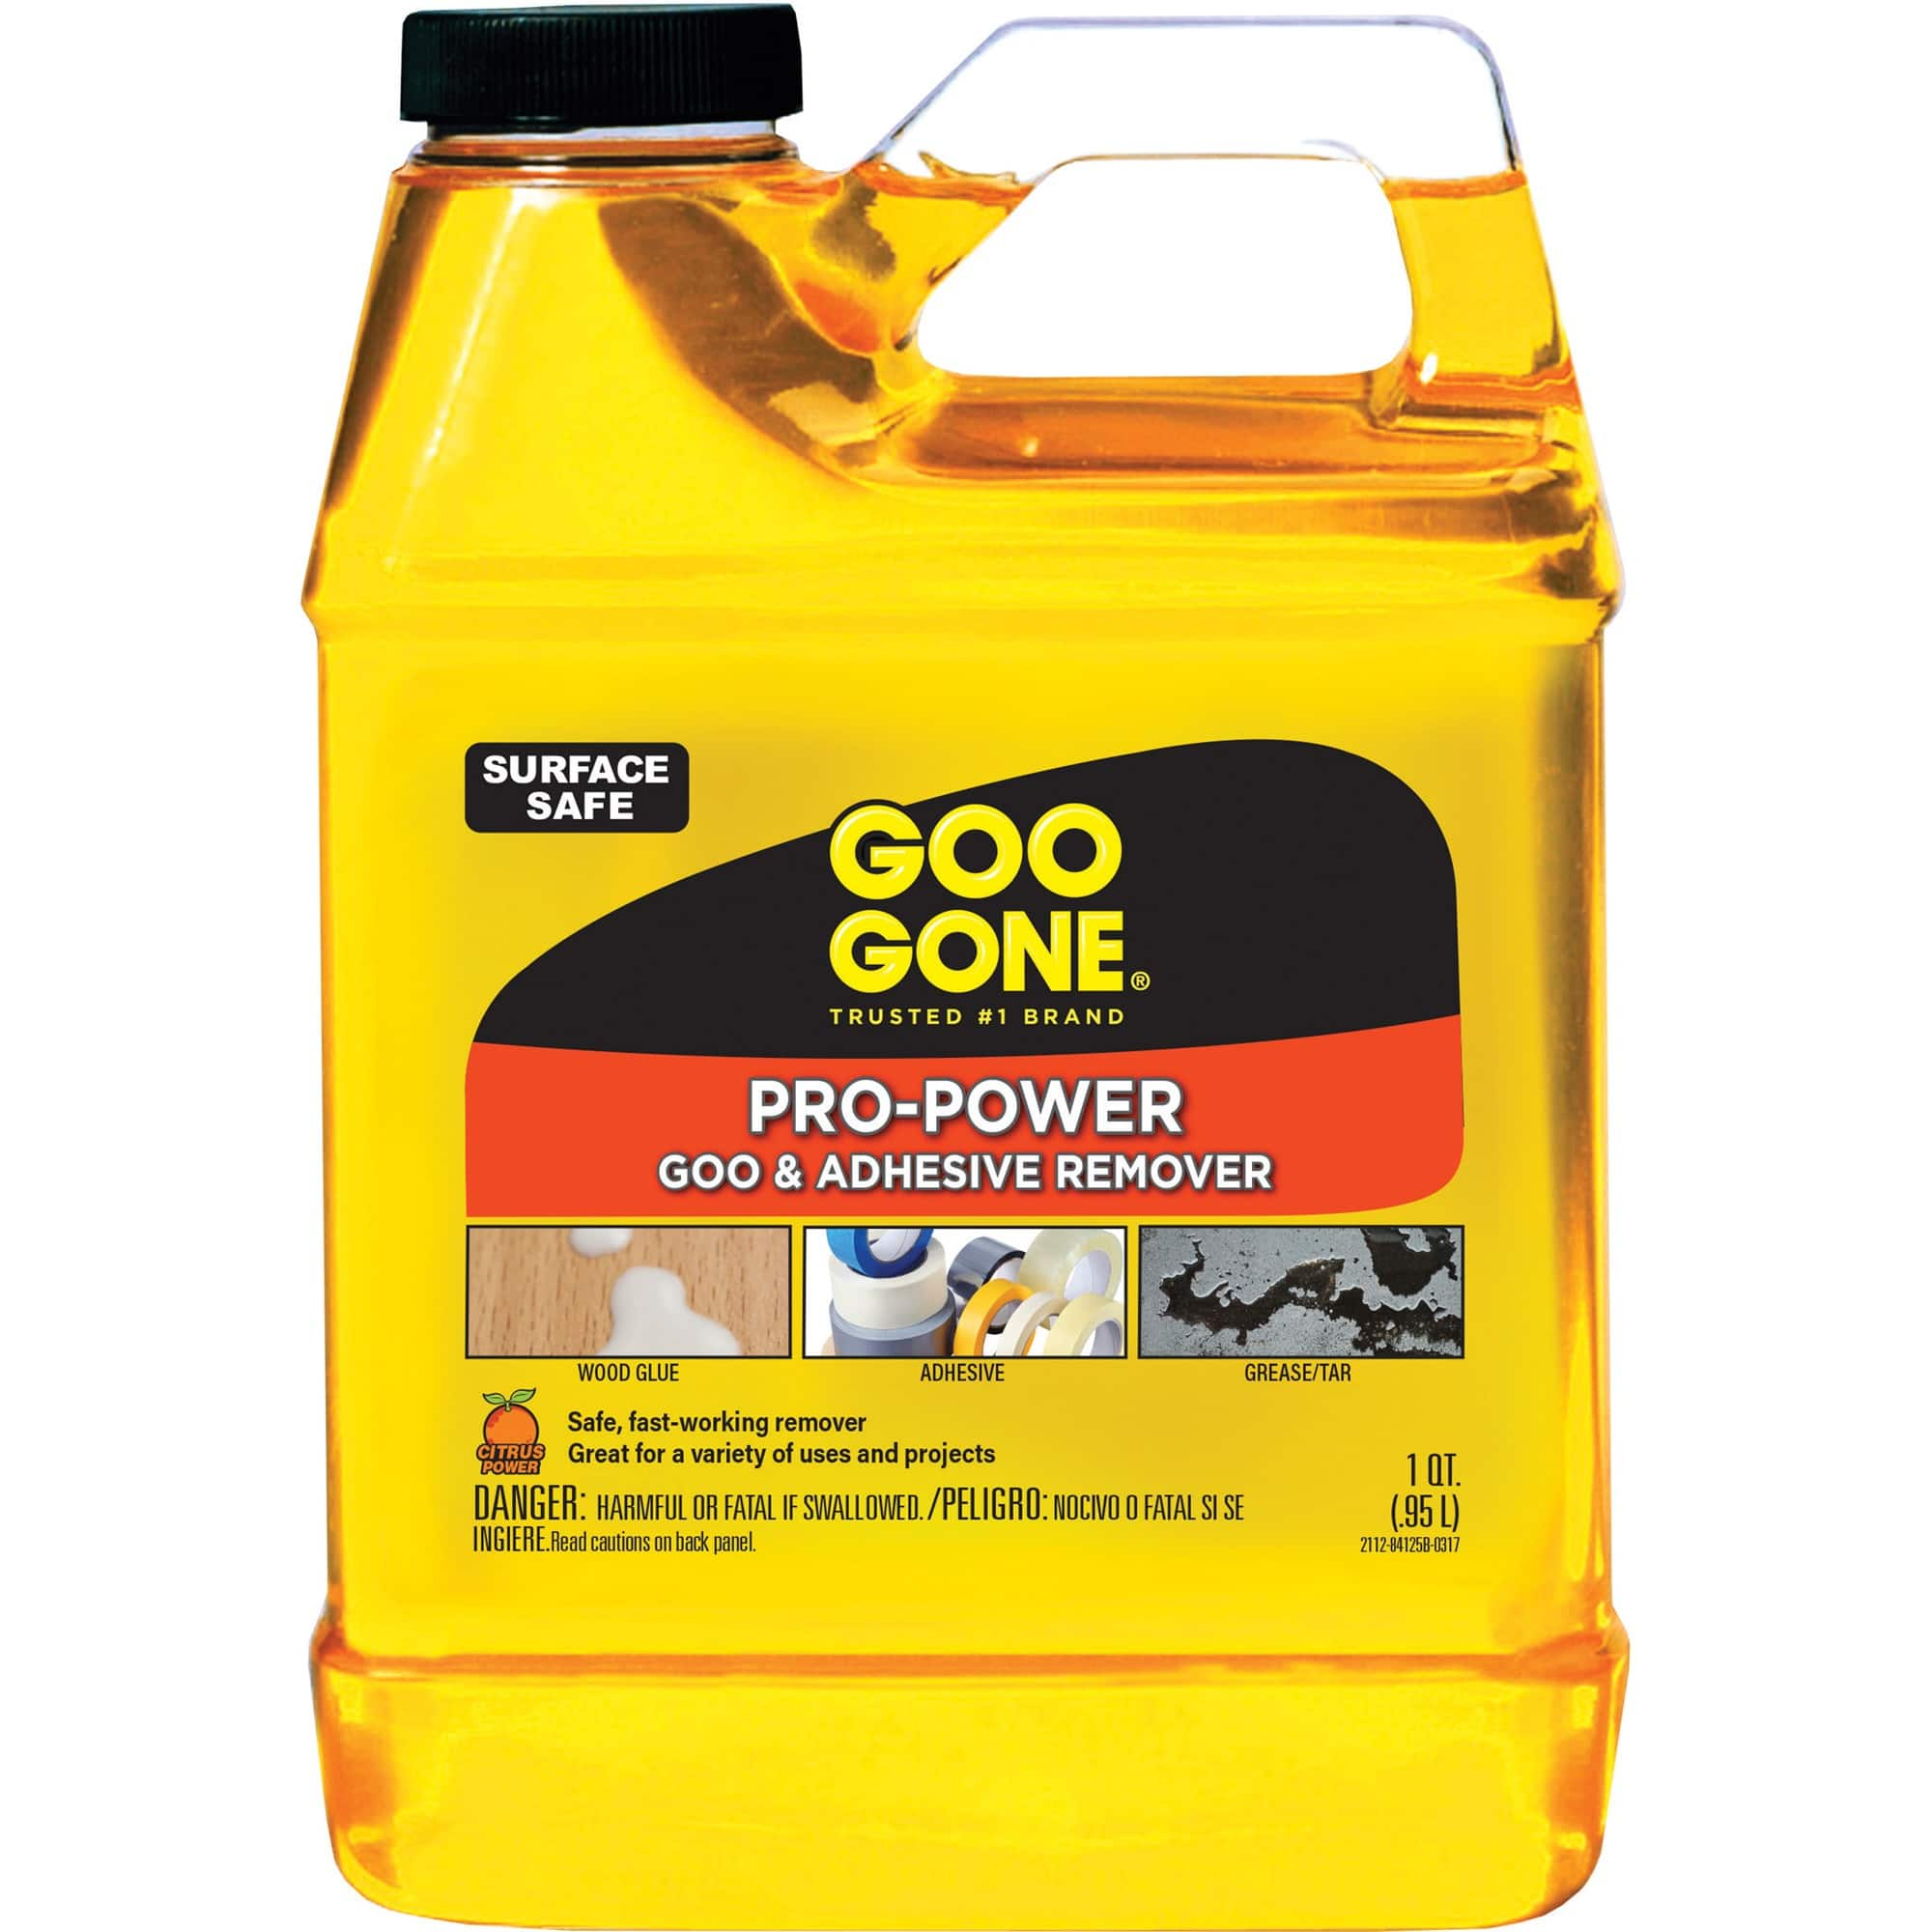 Goo Gone Pro-Power - Professional Strength Adhesive Remover - 32 Fl. Oz. Jug $6.97